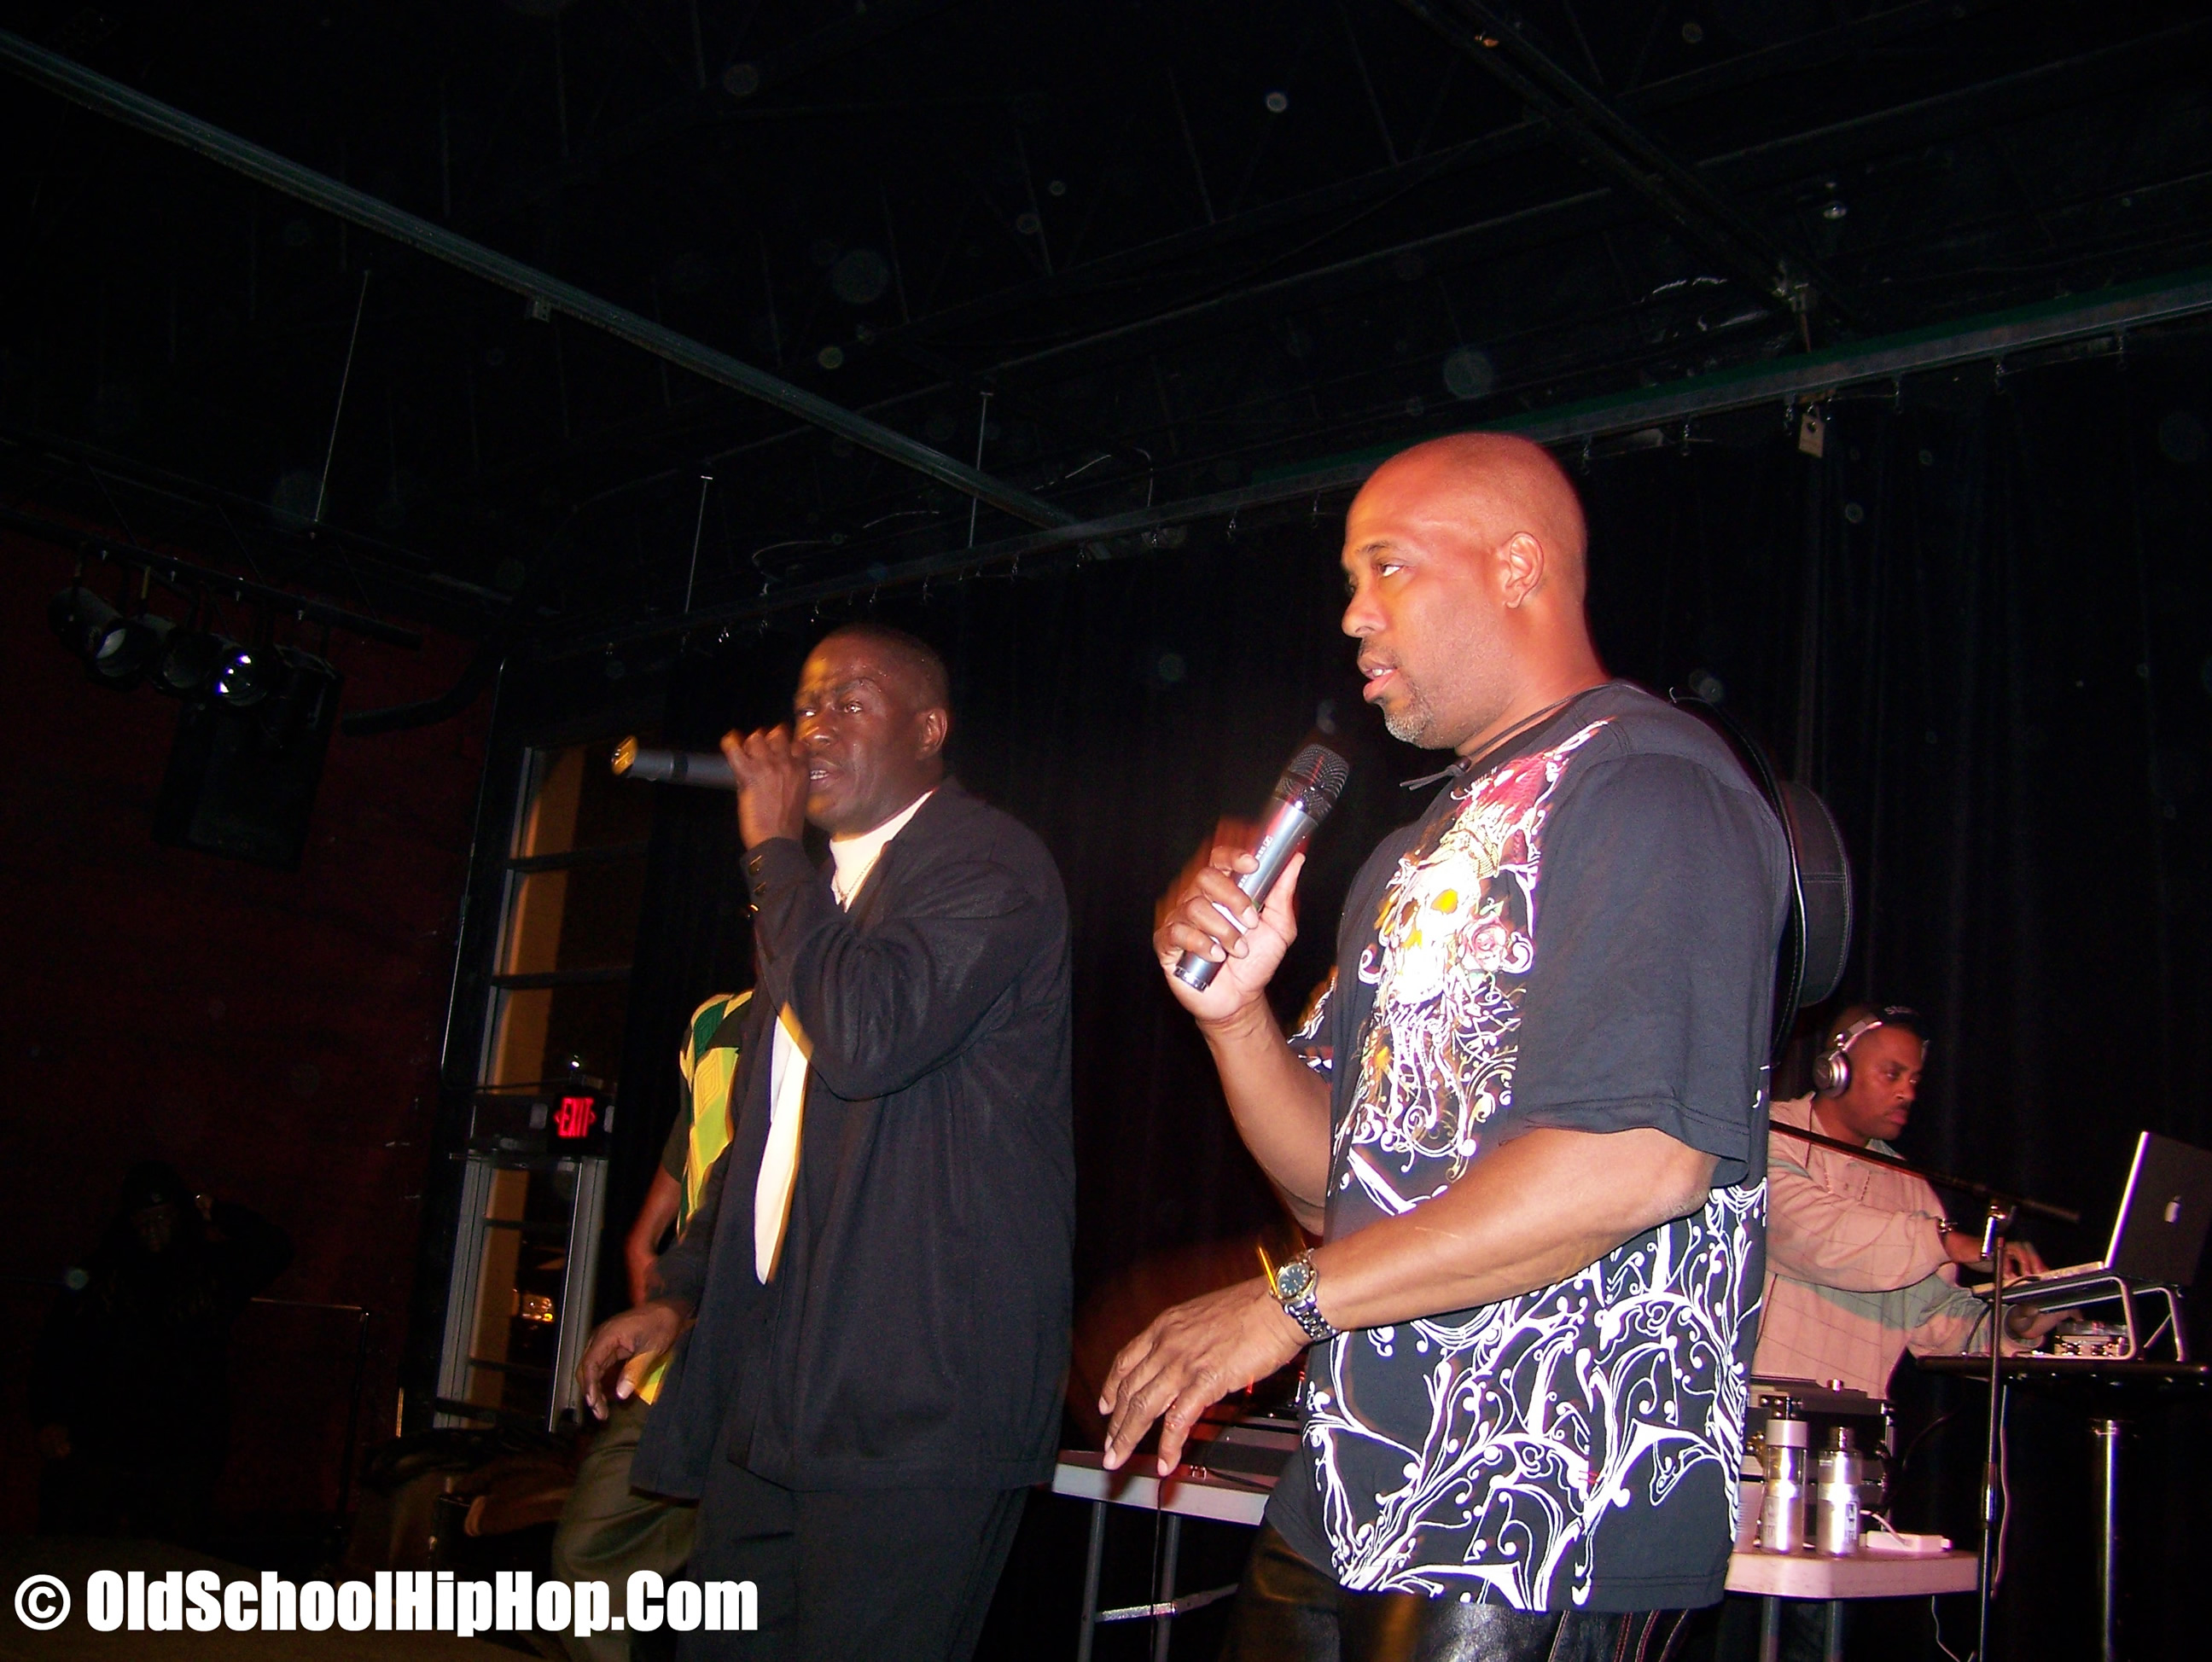 Old School Feature – Whodini Live at The Loft November 25, 2007